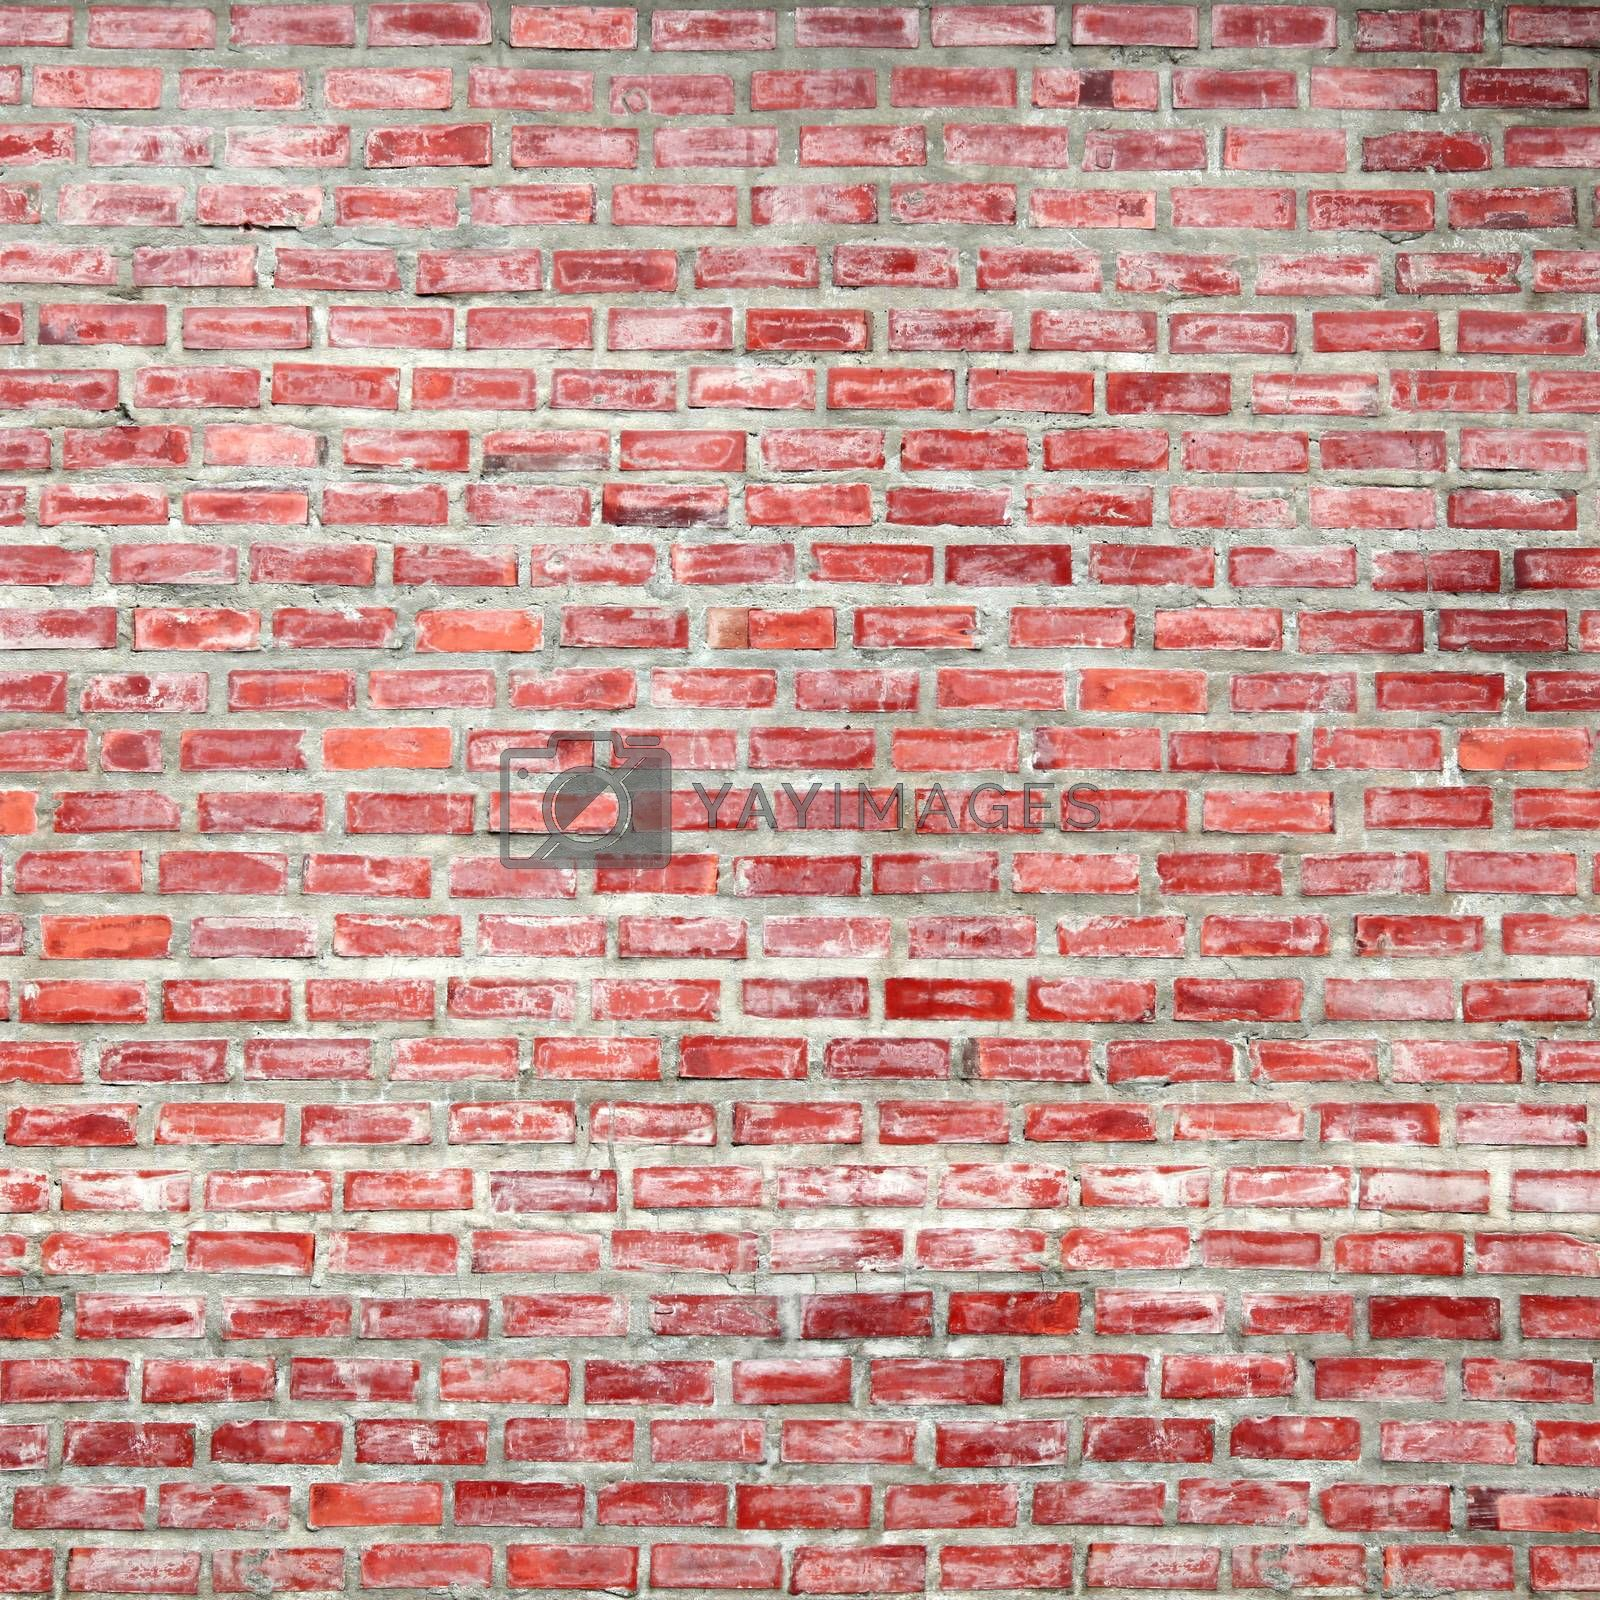 Royalty free image of Brick Wall by antpkr